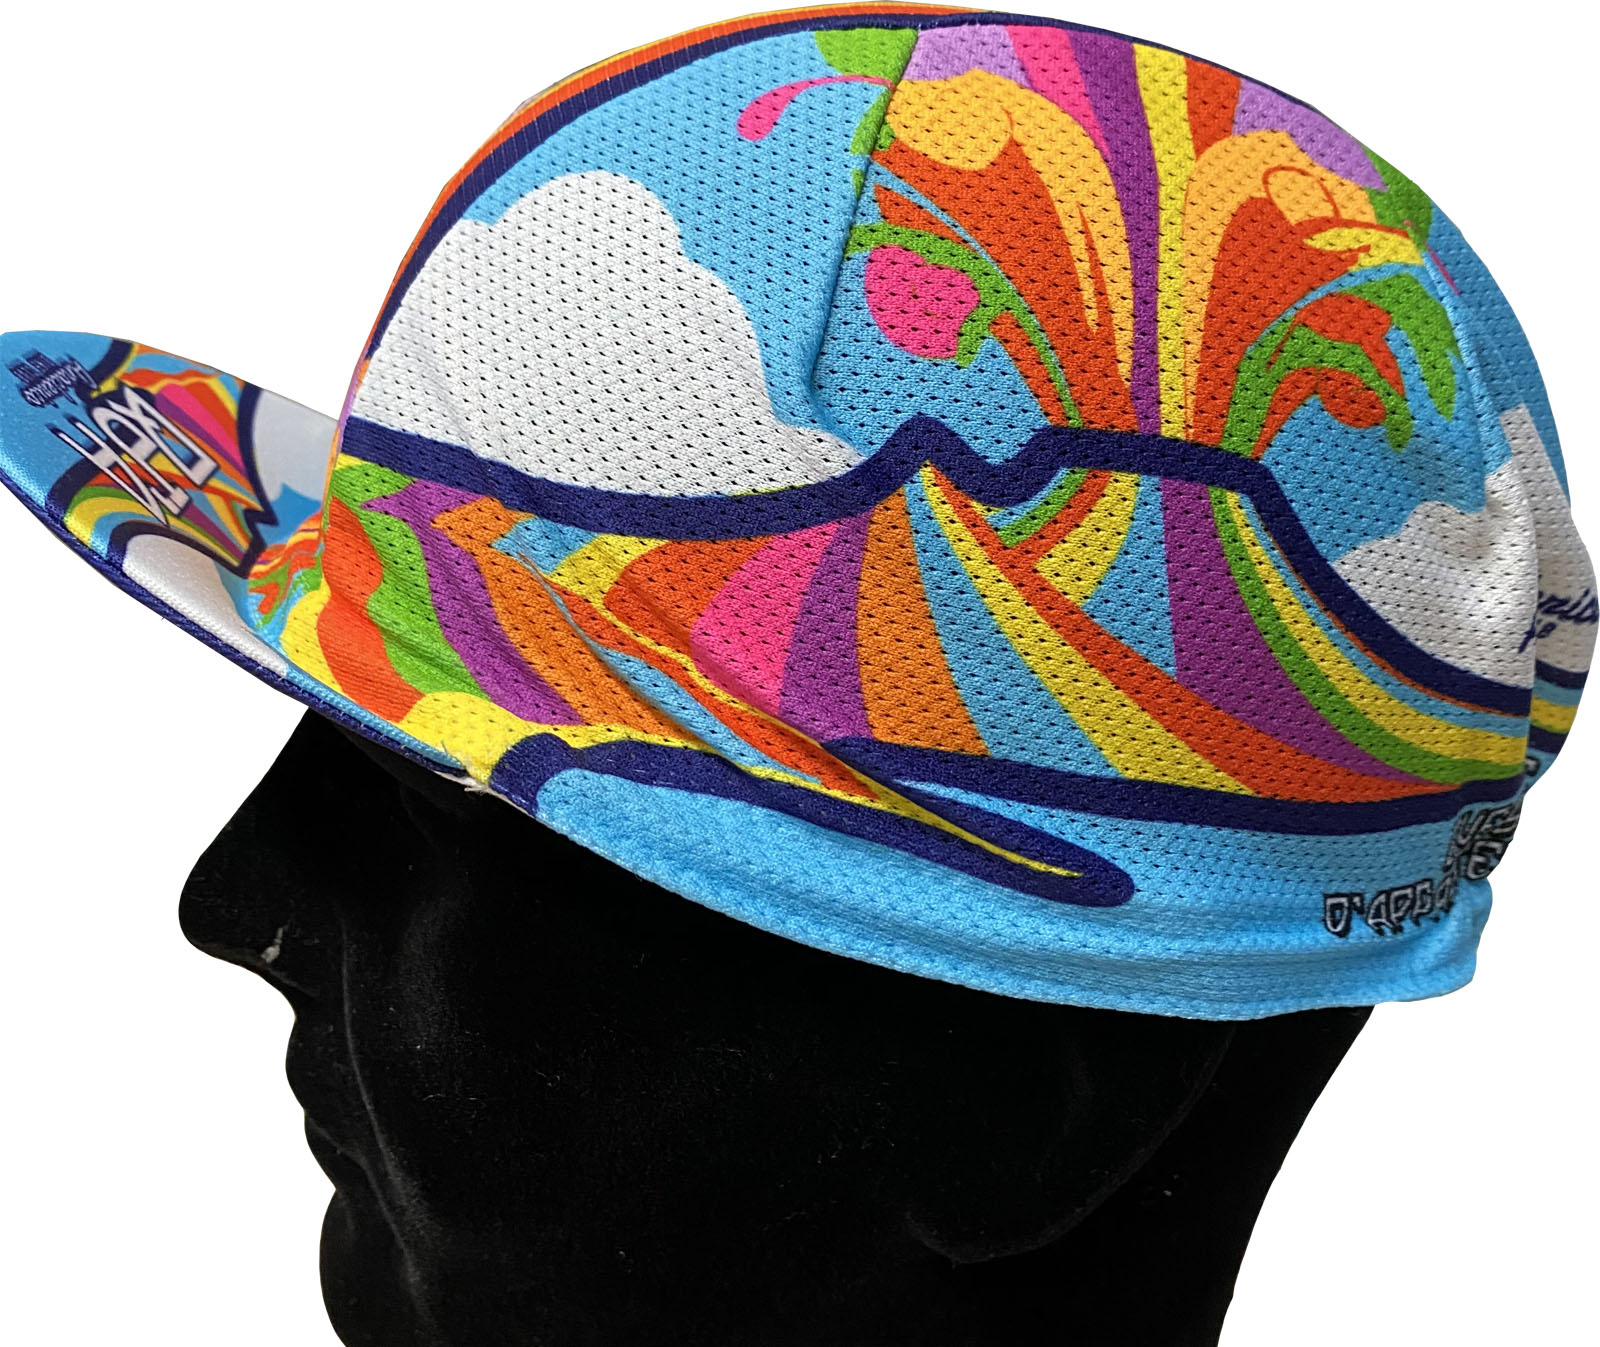 Cycling Cap ABC Anaclerico Sports QUESTIONE D